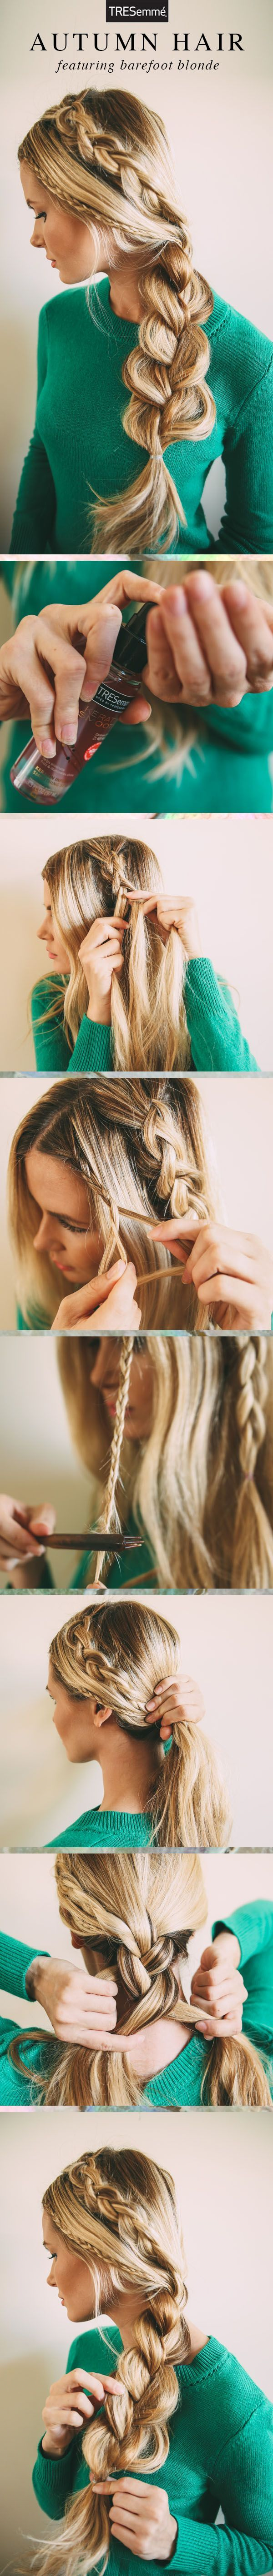 Connoisseur of braids, @Barefoot Blonde by Amber Fillerup shows us a triple-braid autumn look (because two braids just aren't enough).